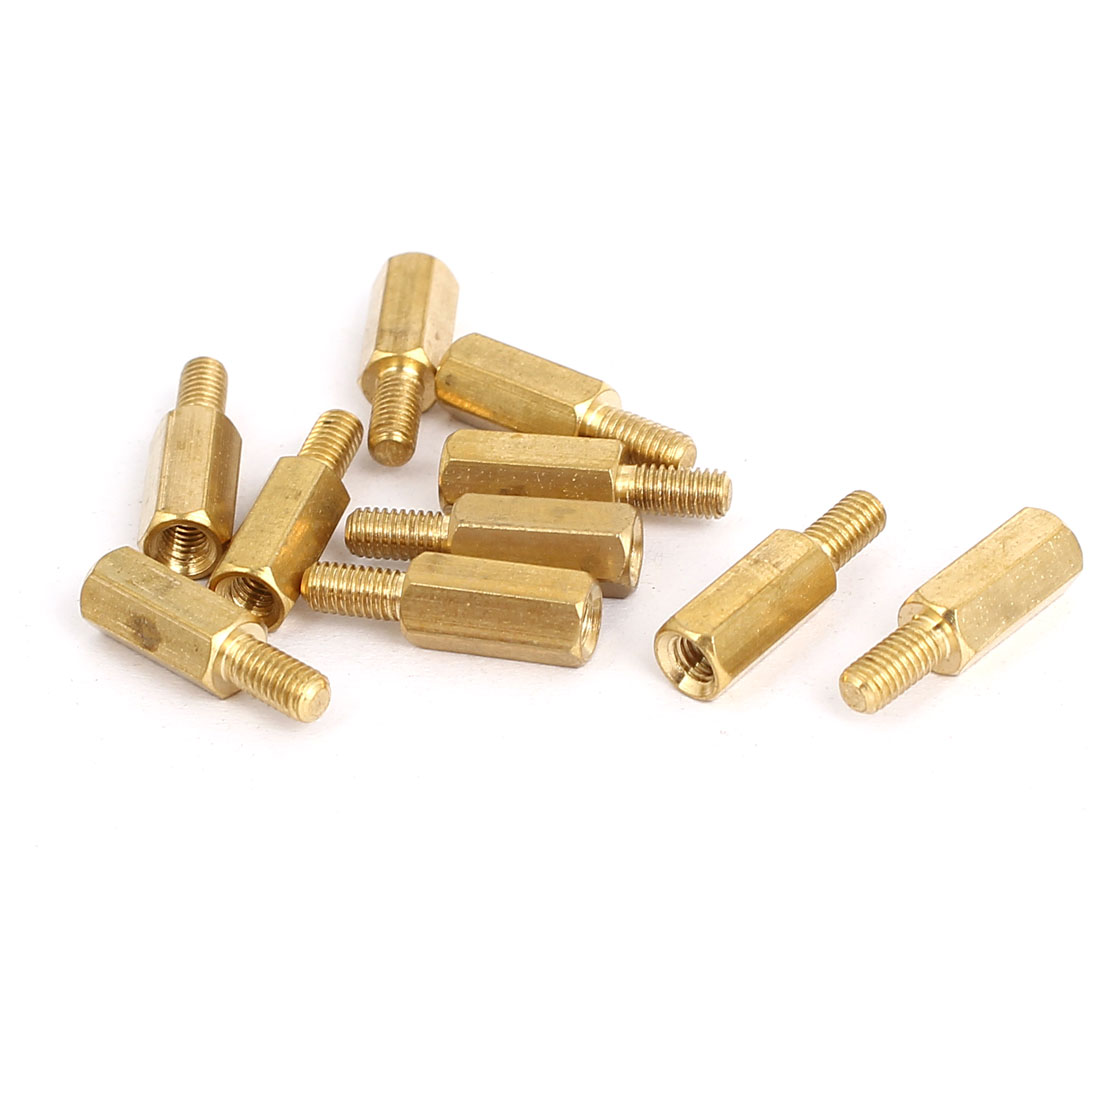 M3 Male to Female Thread Insulated Brass Standoff Hexagonal Spacer 10+6mm Long 10pcs